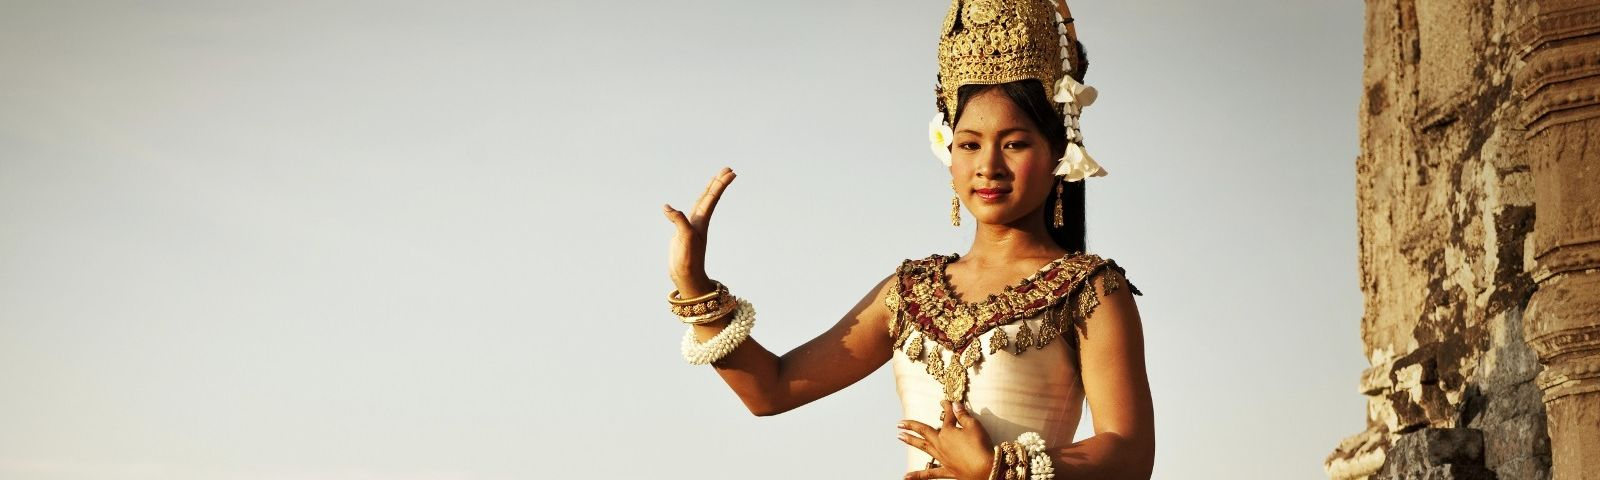 A dancer at Angkor Wat in Cambodia